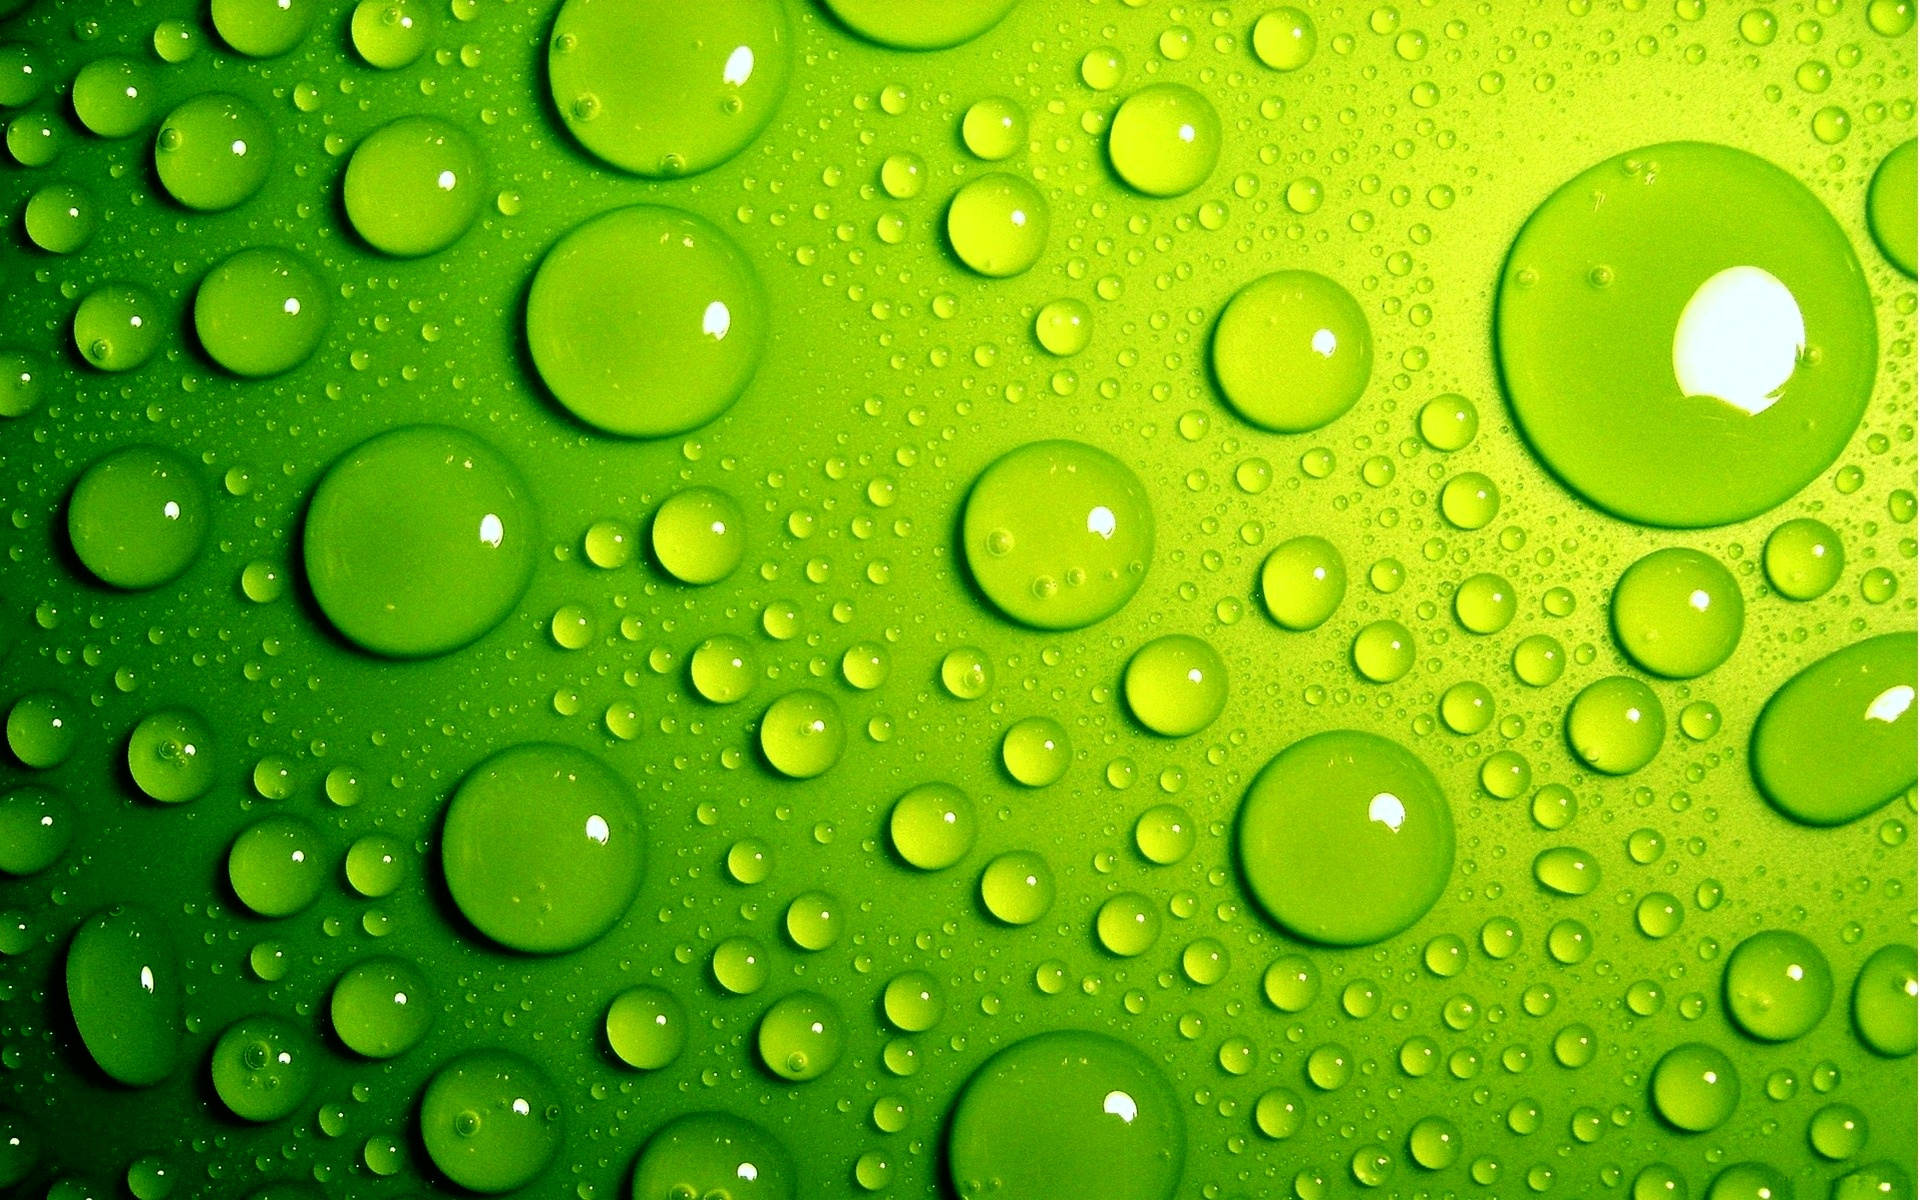 Full HD Green Wallpapers